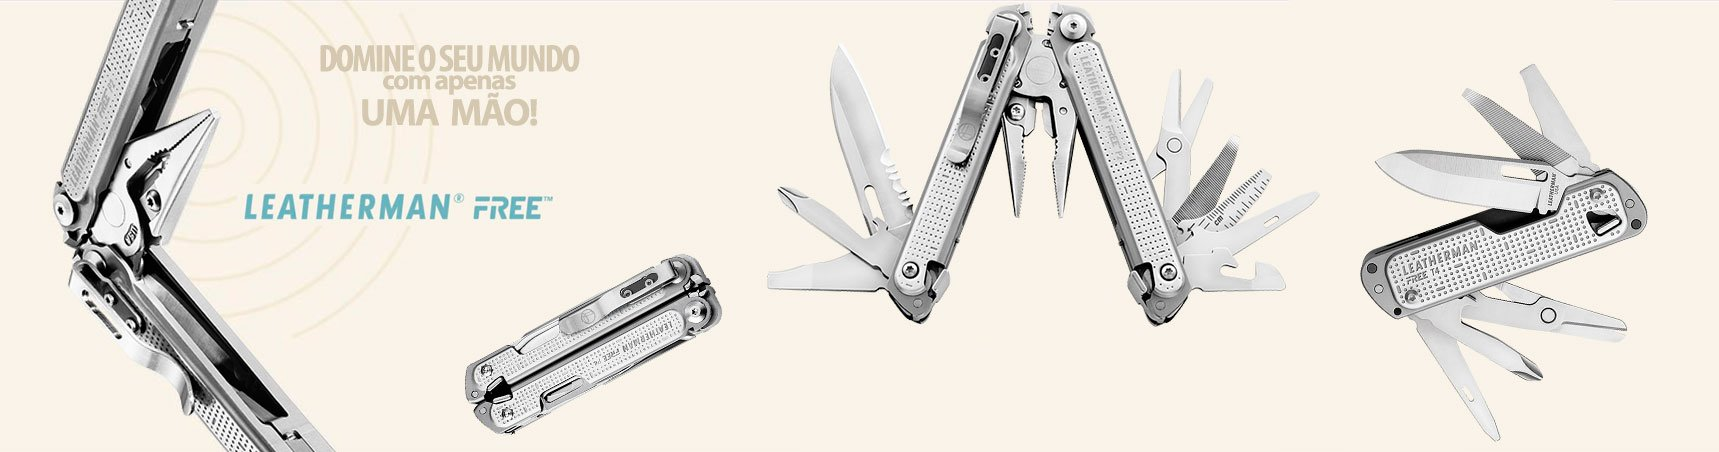 Leatherman Free link to brand leatherman